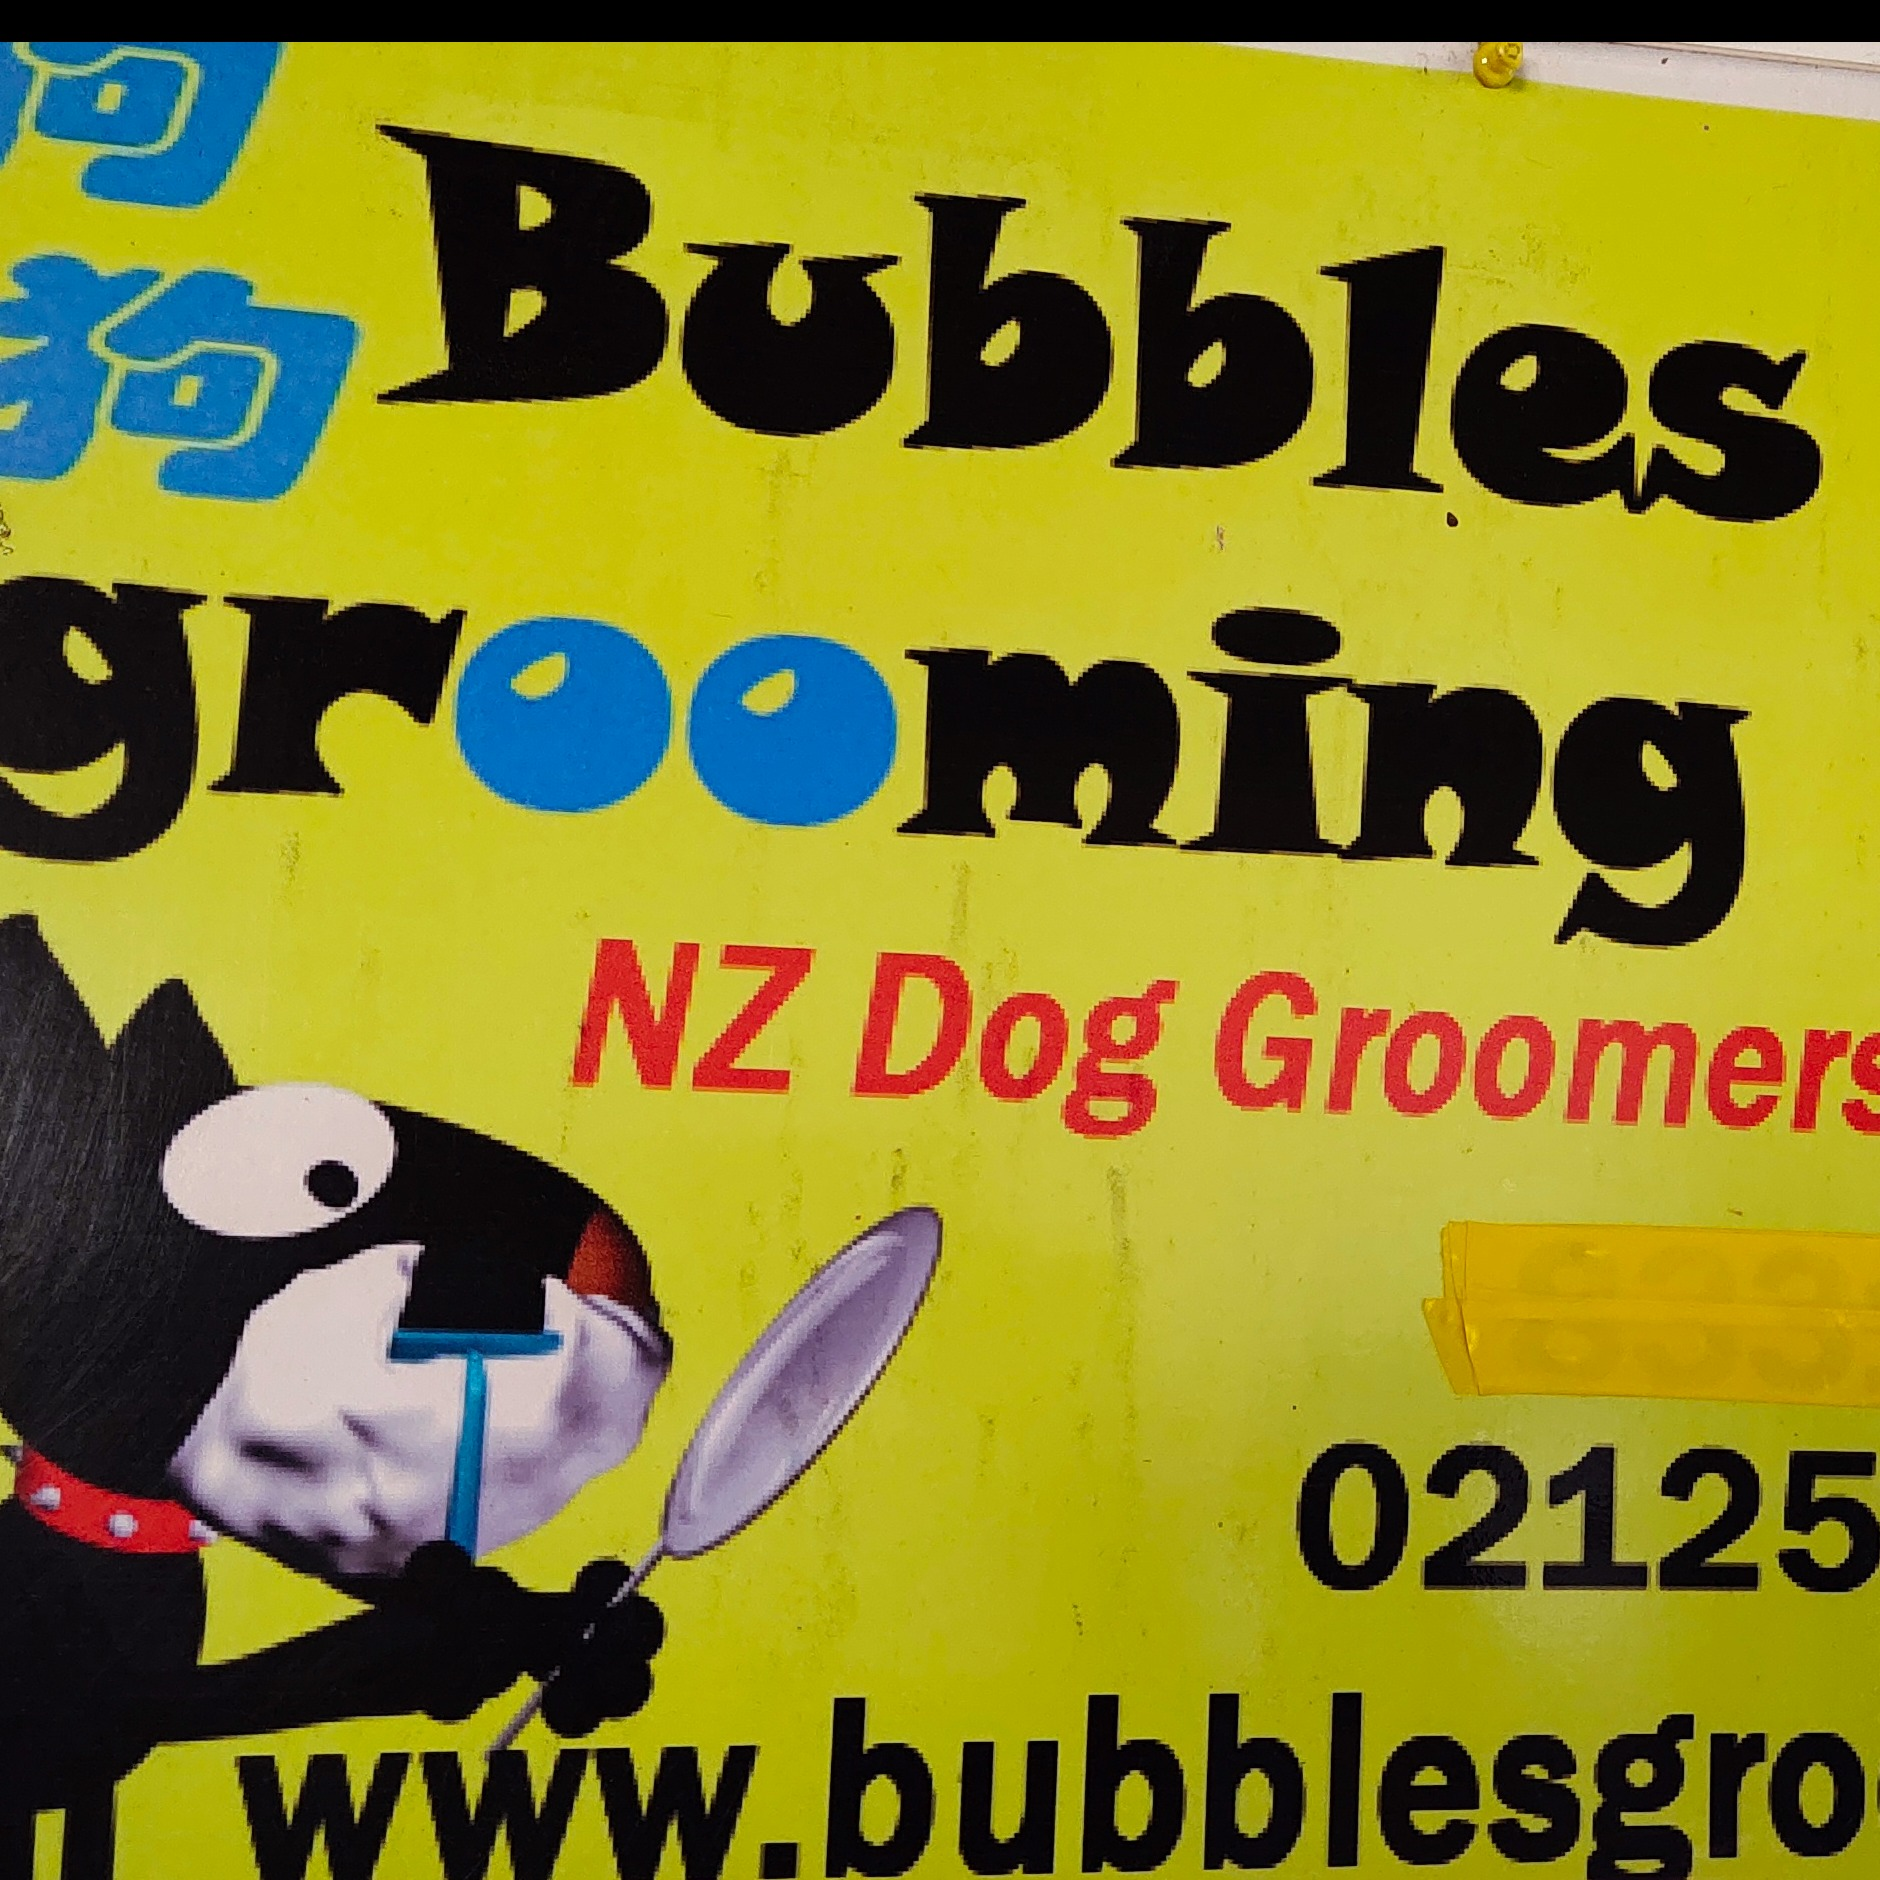 Bubbles Dog Grooming Salon